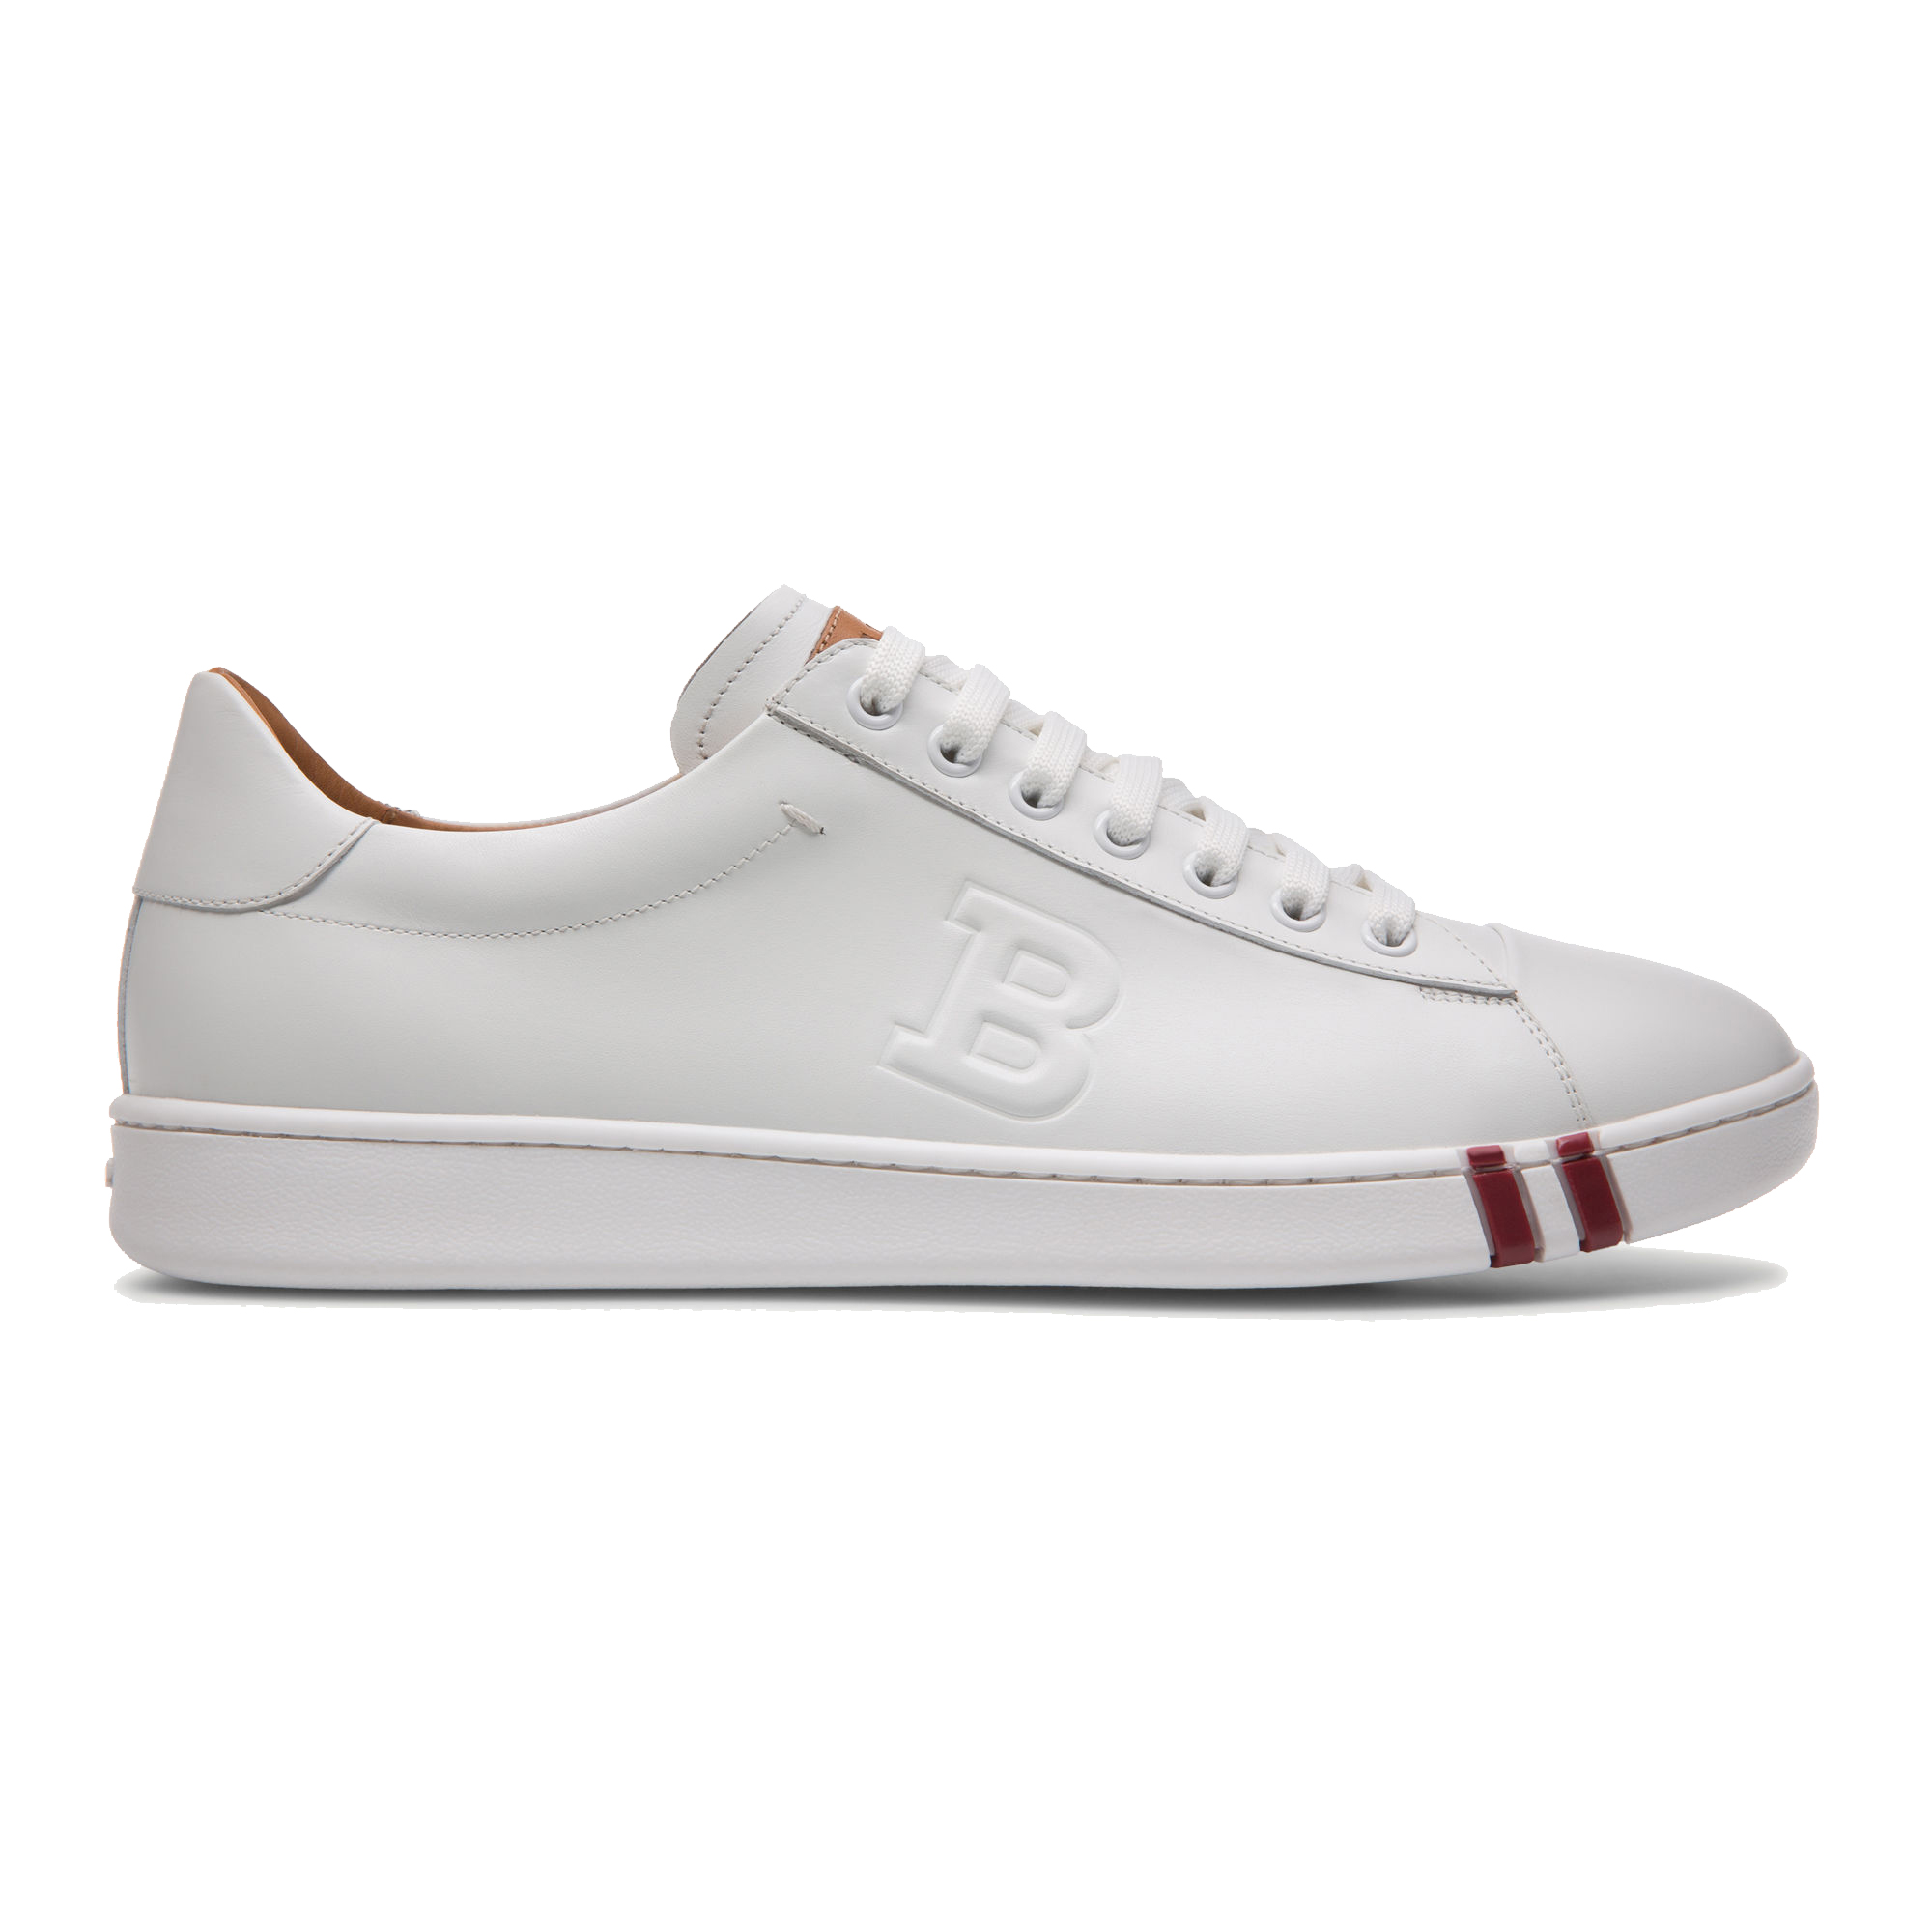 Bally Wivian Leather Perforated Trainer